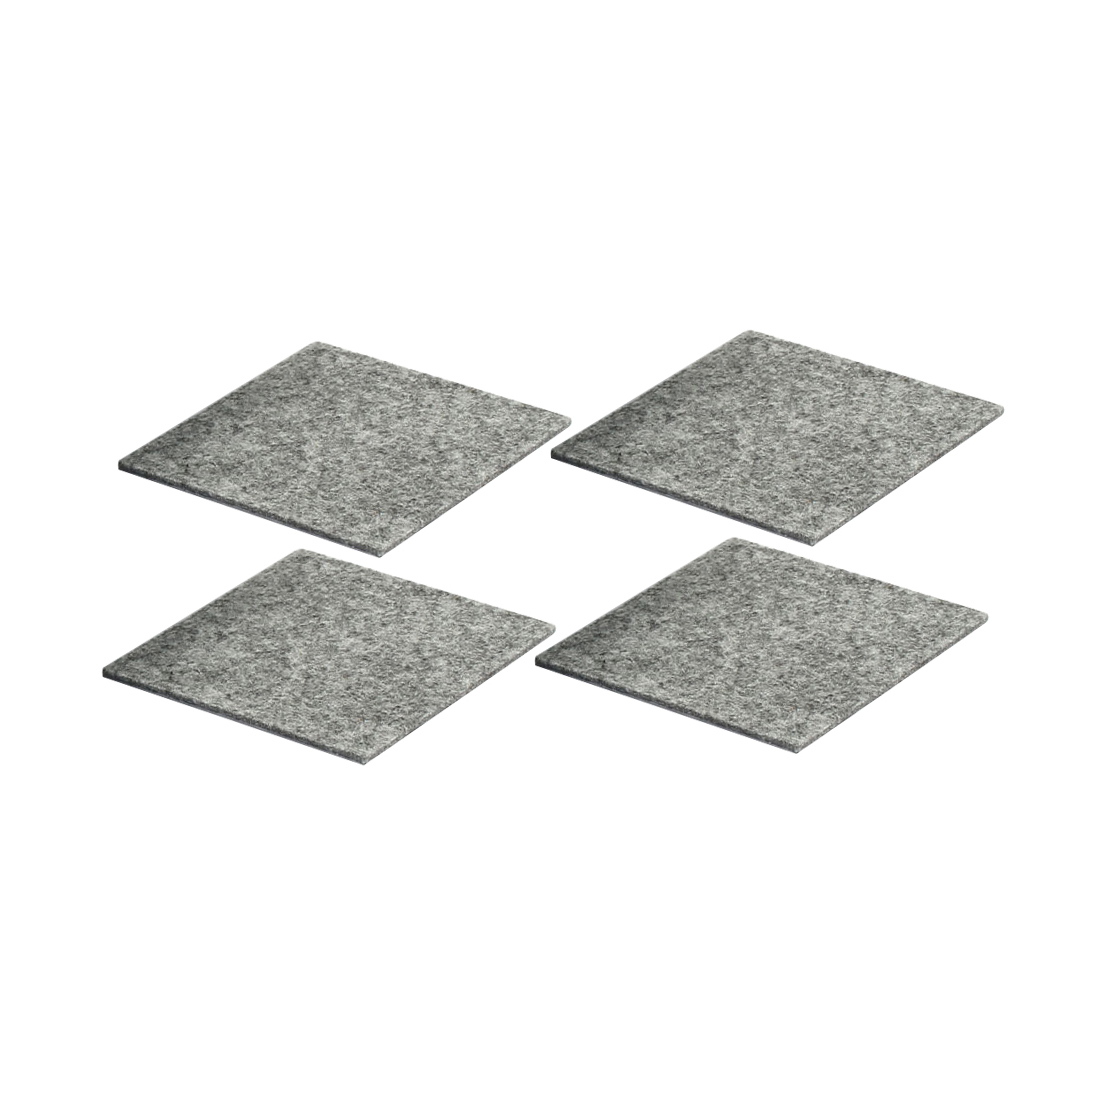 Table Chair Legs Square Anti Slip Furniture Felt Pads Covers Protector Gray 85 x 85mm 4pcs